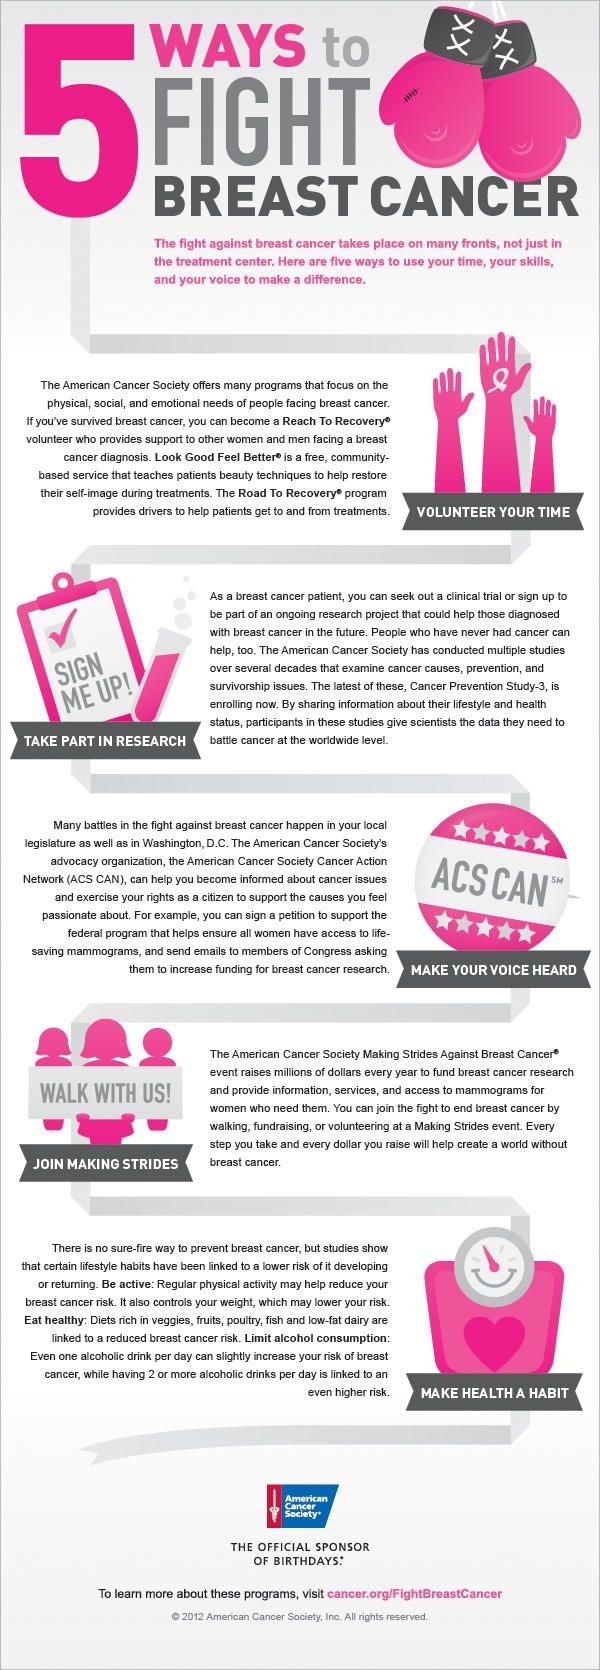 In honor of Breast Cancer Awareness Month here are 5 ways to fight breast cancer Infographic from the American Cancer Society the official sponsor of